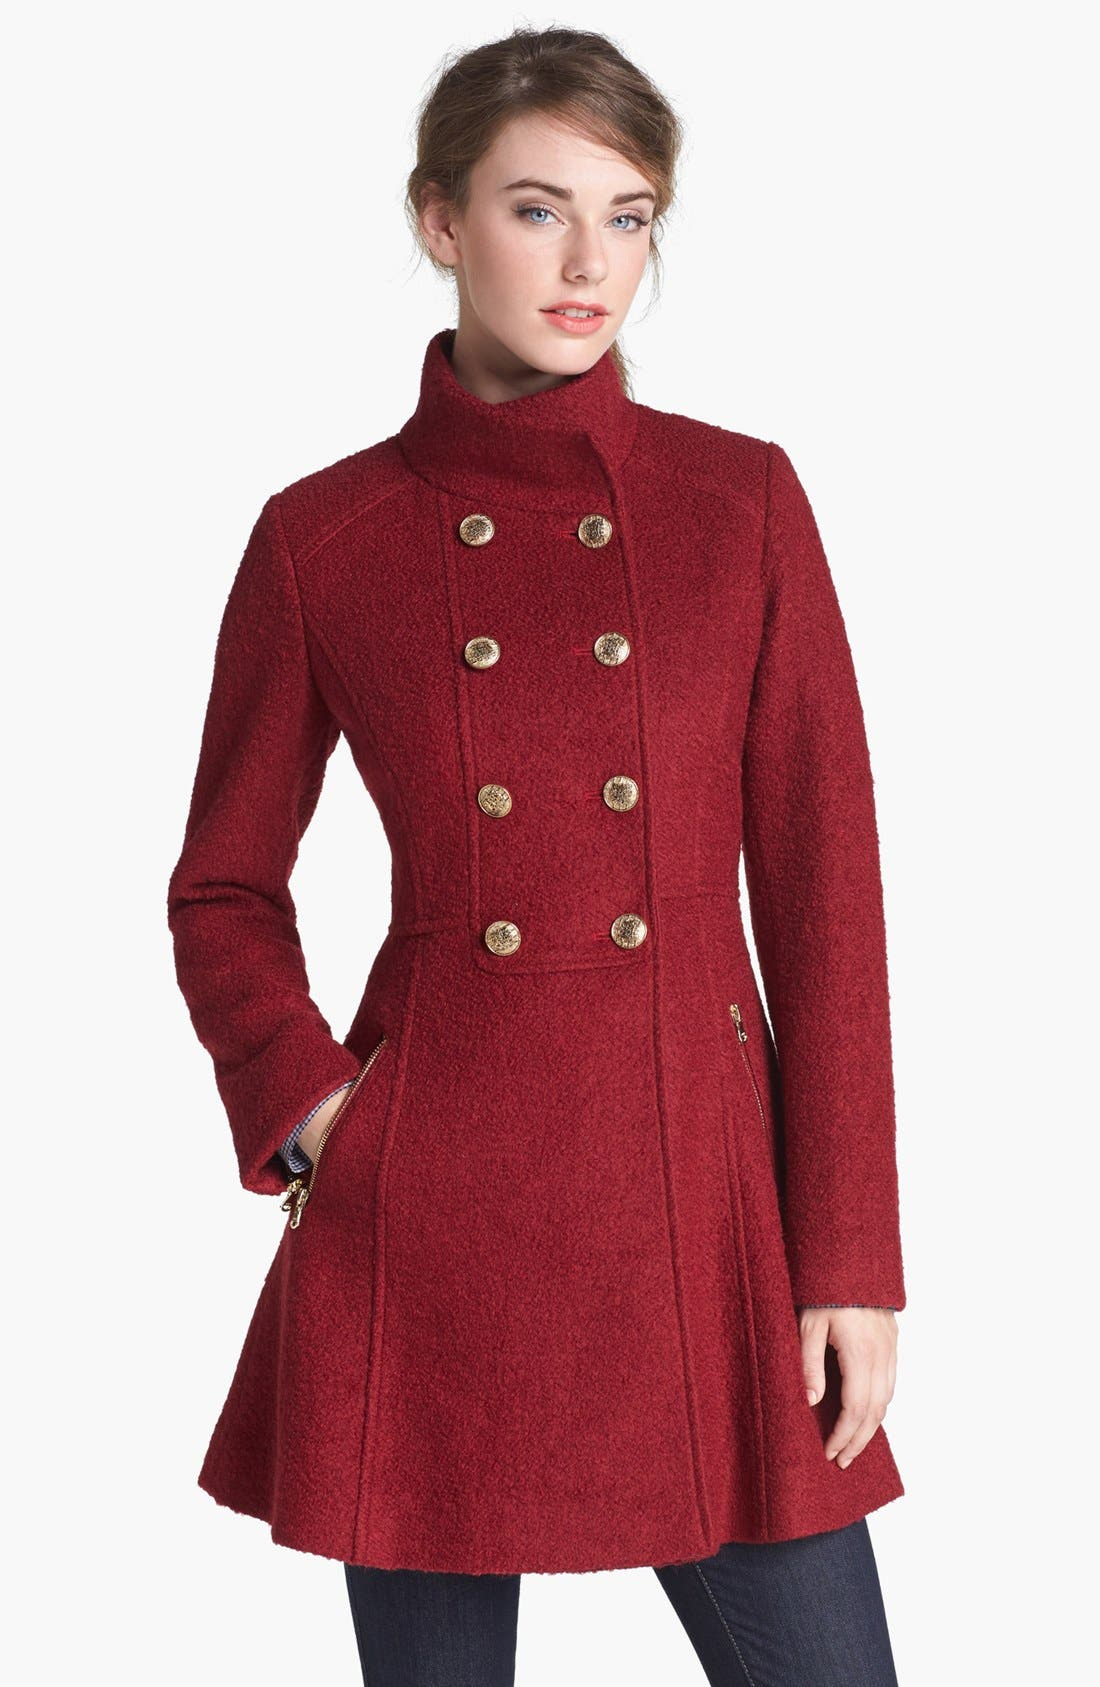 Alternate Image 1 Selected - GUESS Fit & Flare Bouclé Military Coat (Online Only)